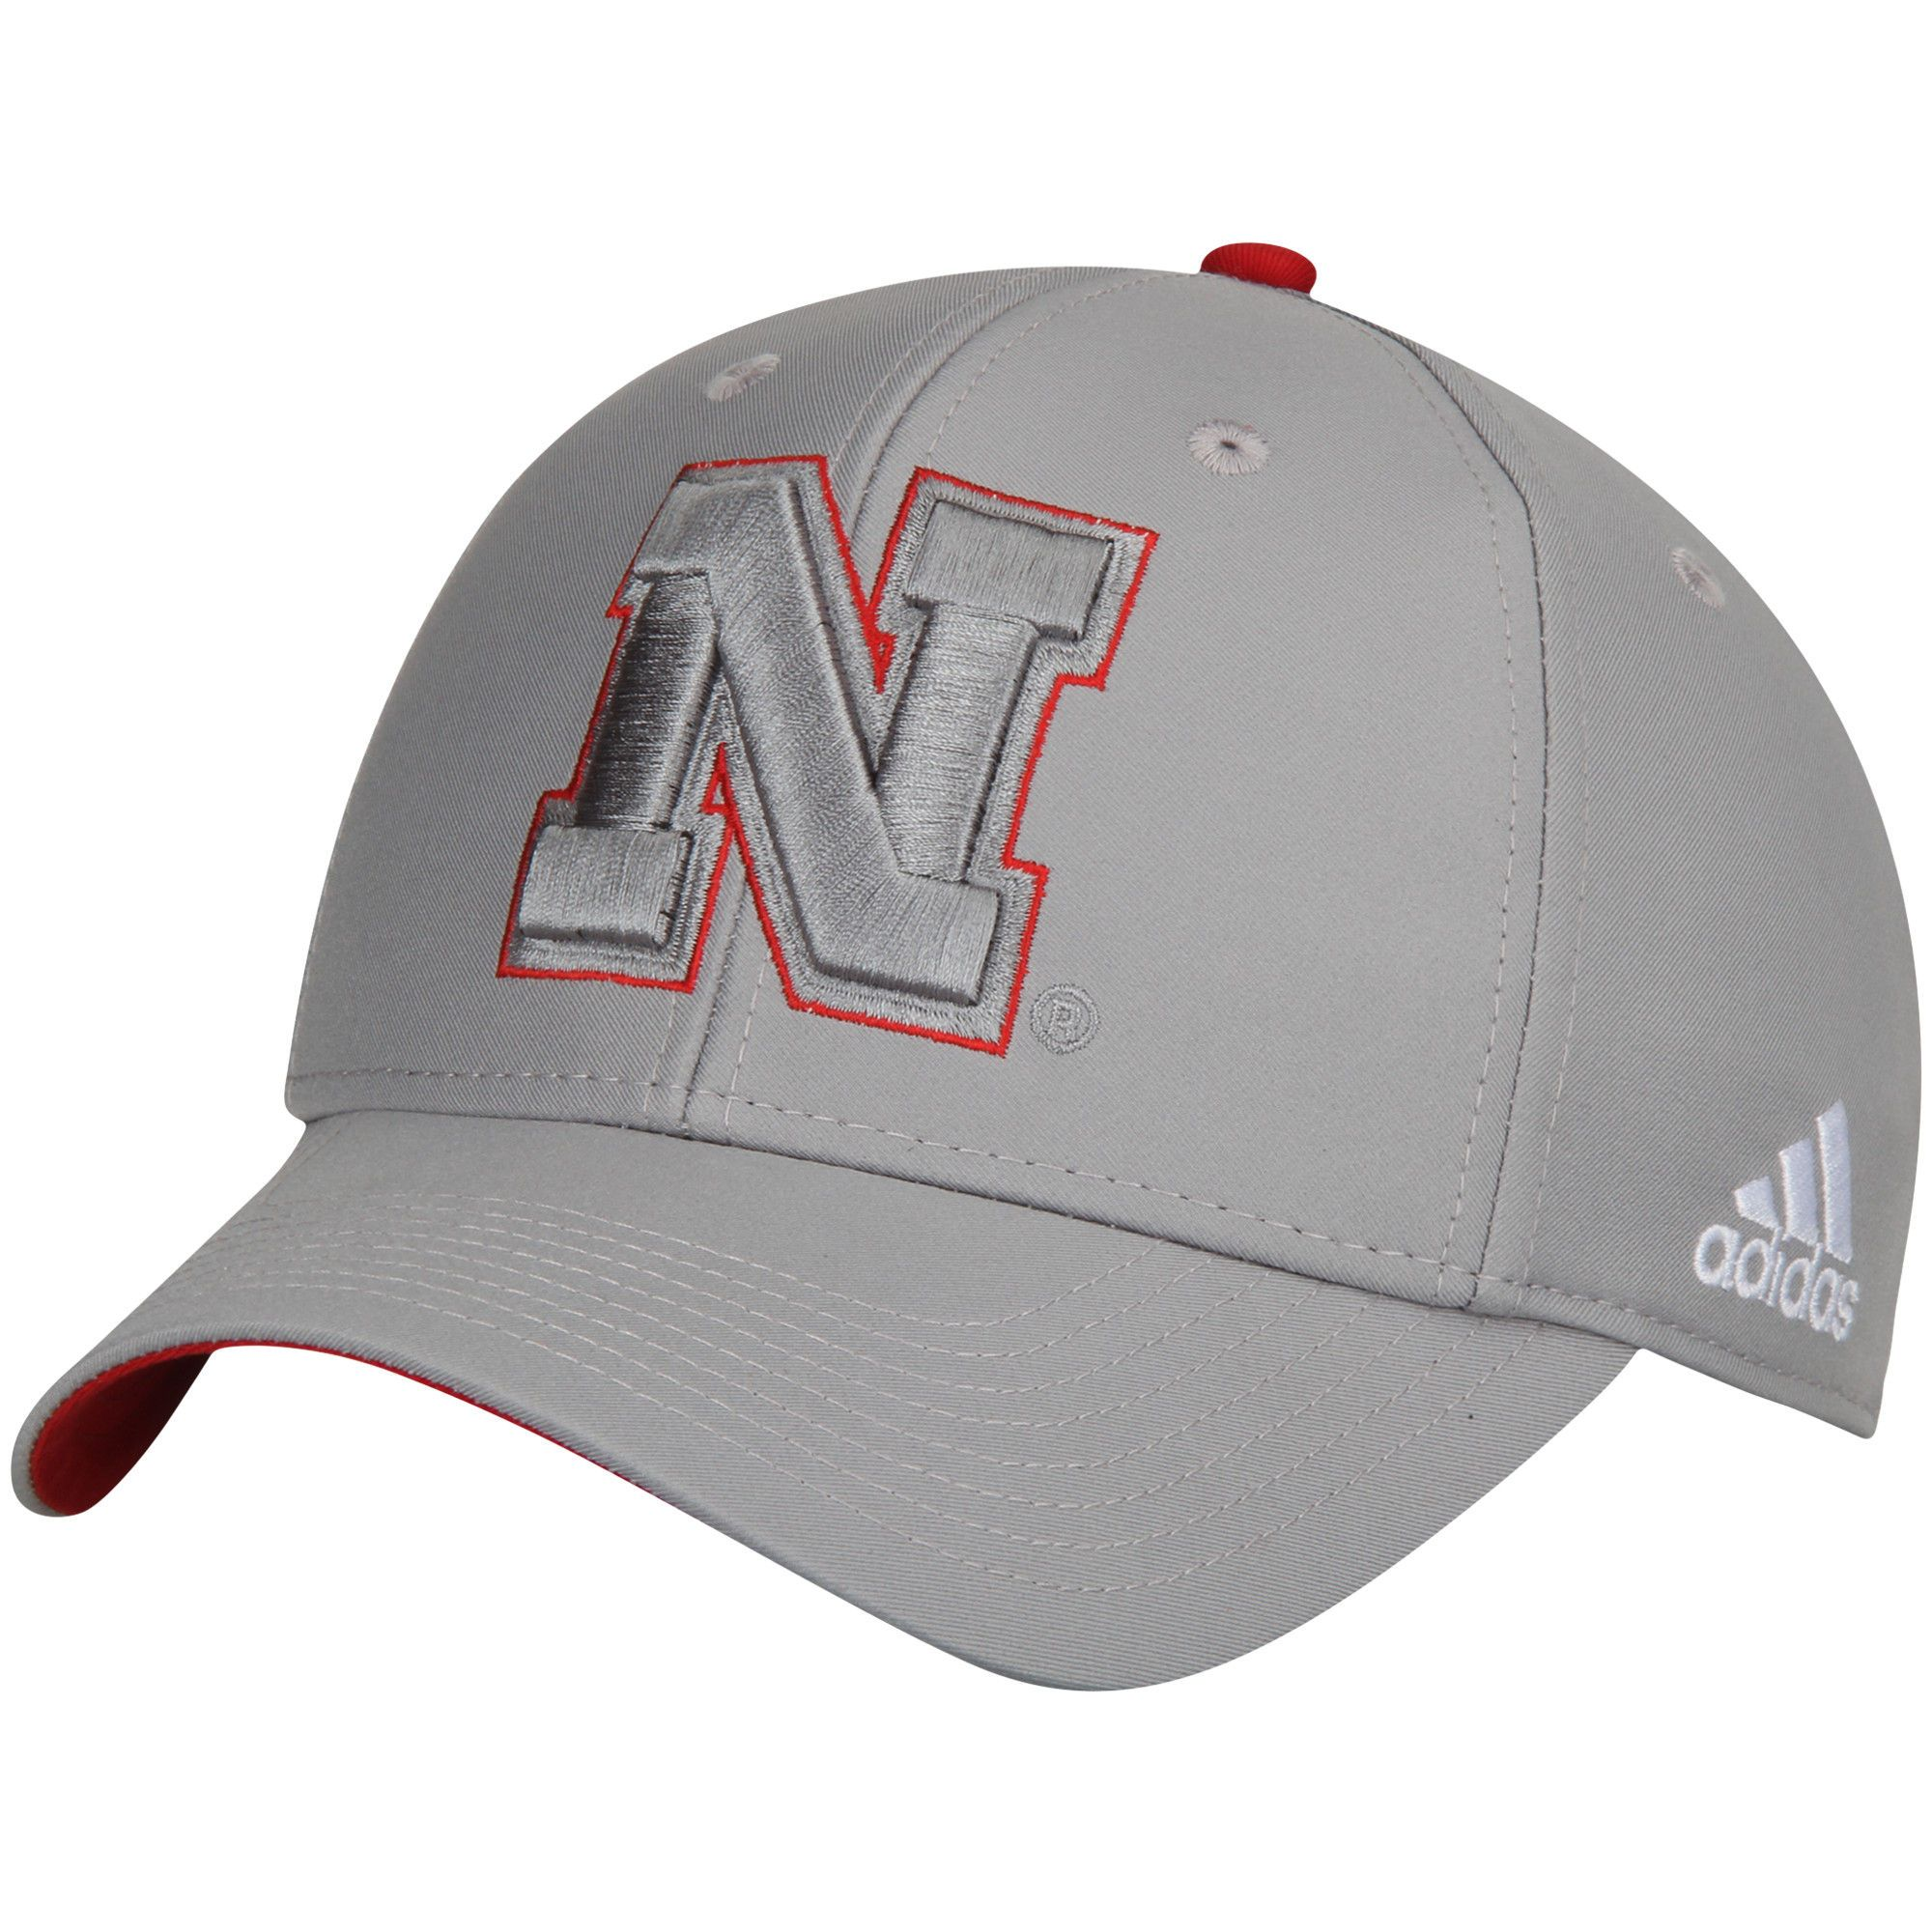 superior quality 84b3b 4482b Nebraska Cornhuskers adidas Team Logo Flex Hat - Gray